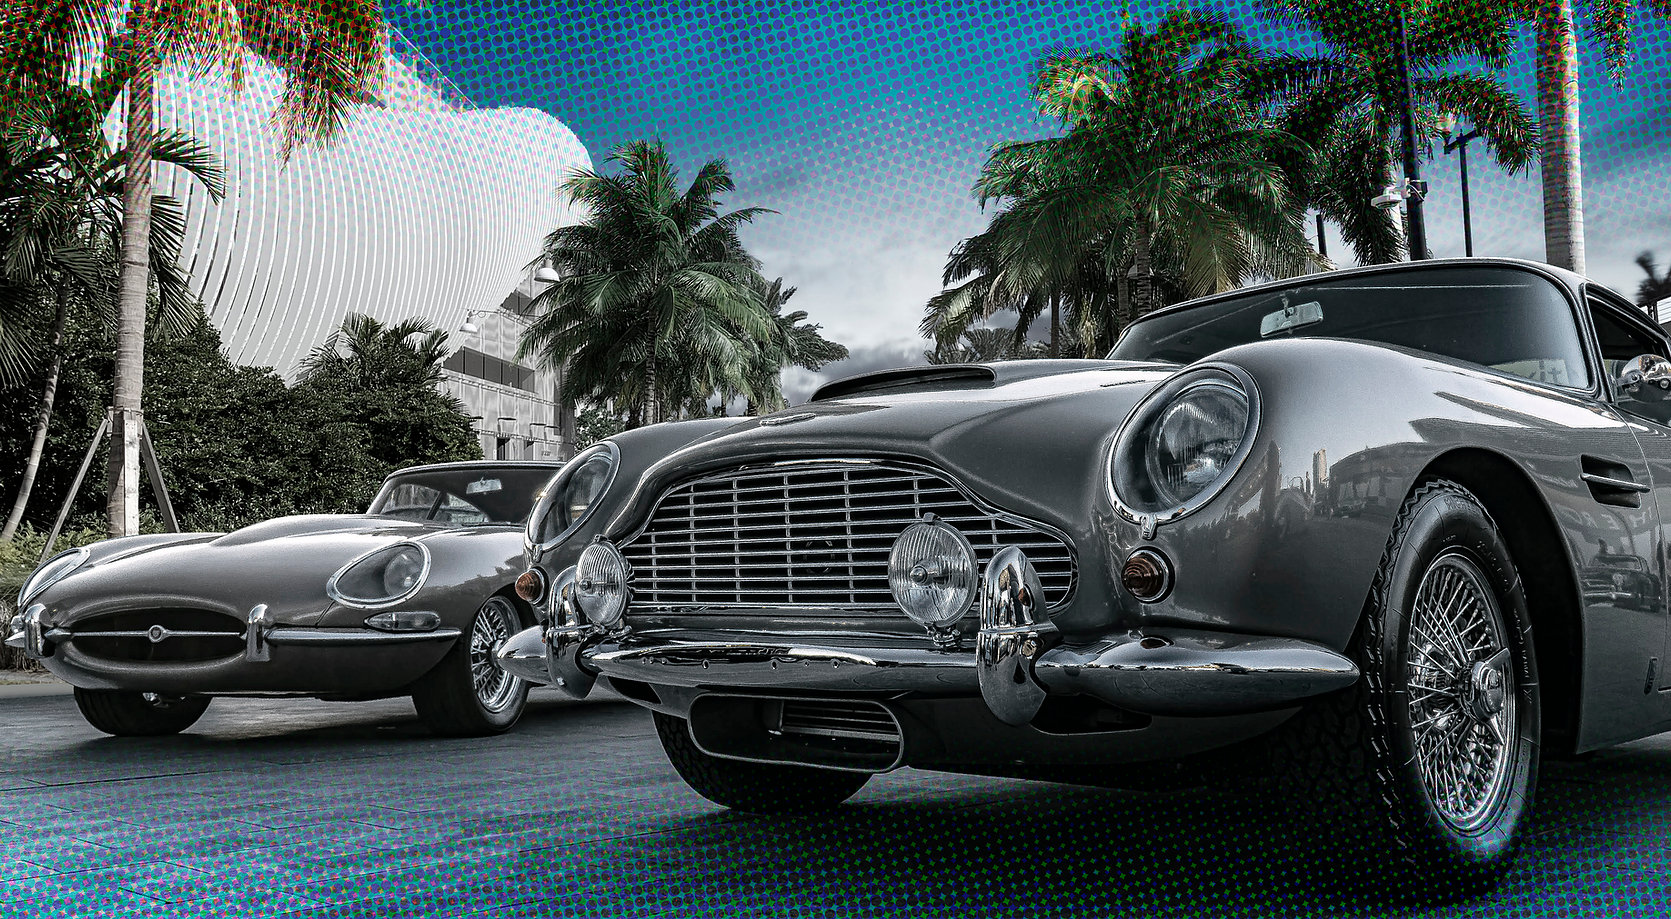 Classic Car Show in Fort Lauderdale